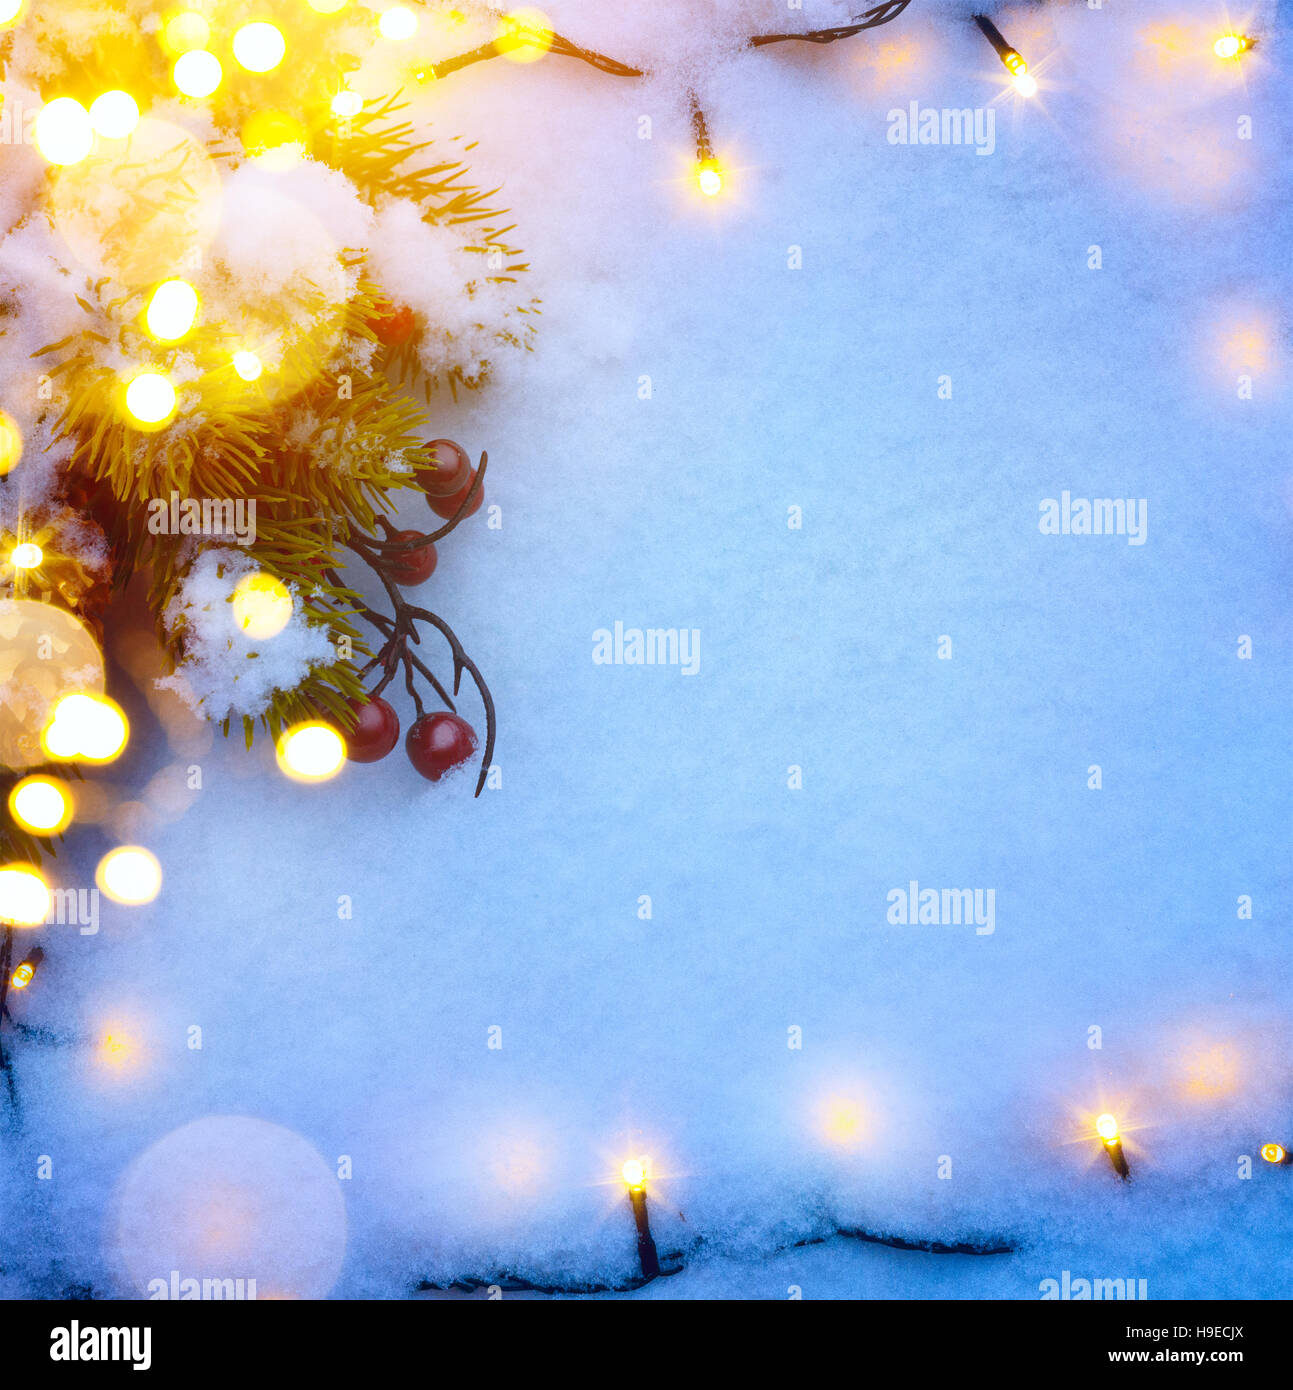 blue christmas background with snow fir tree and holidays light stock photo alamy https www alamy com stock photo blue christmas background with snow fir tree and holidays light christmas 126321746 html